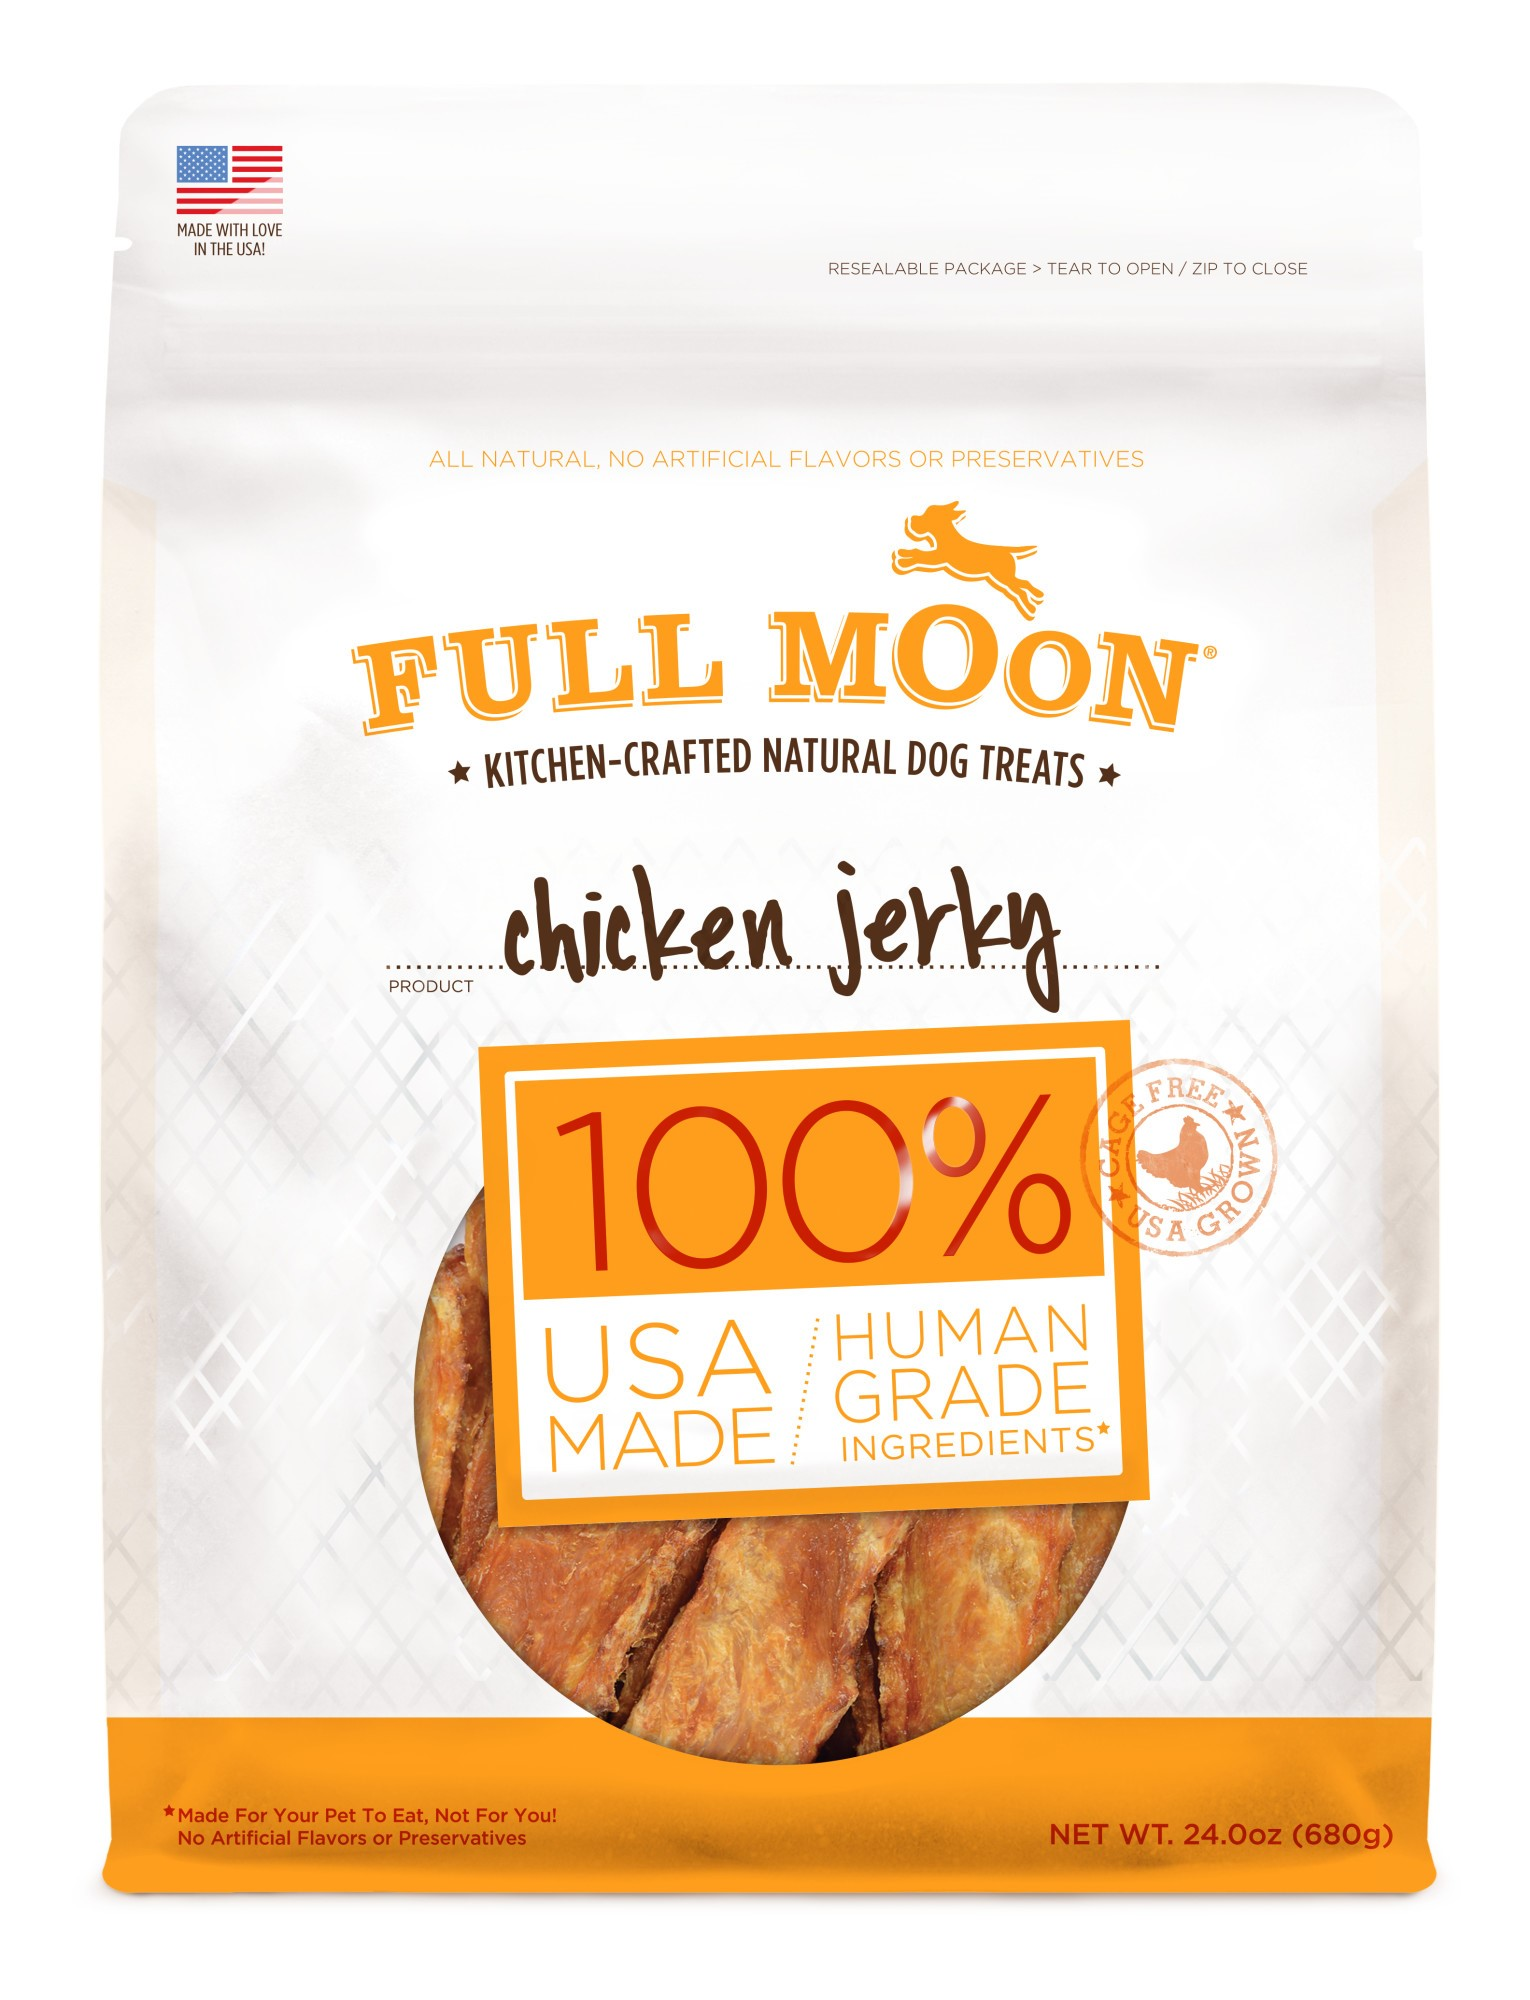 Full Moon All Natural Human Grade Dog Treats, Chicken Jerky, 24 Ounce by Perdue Foods, LLC